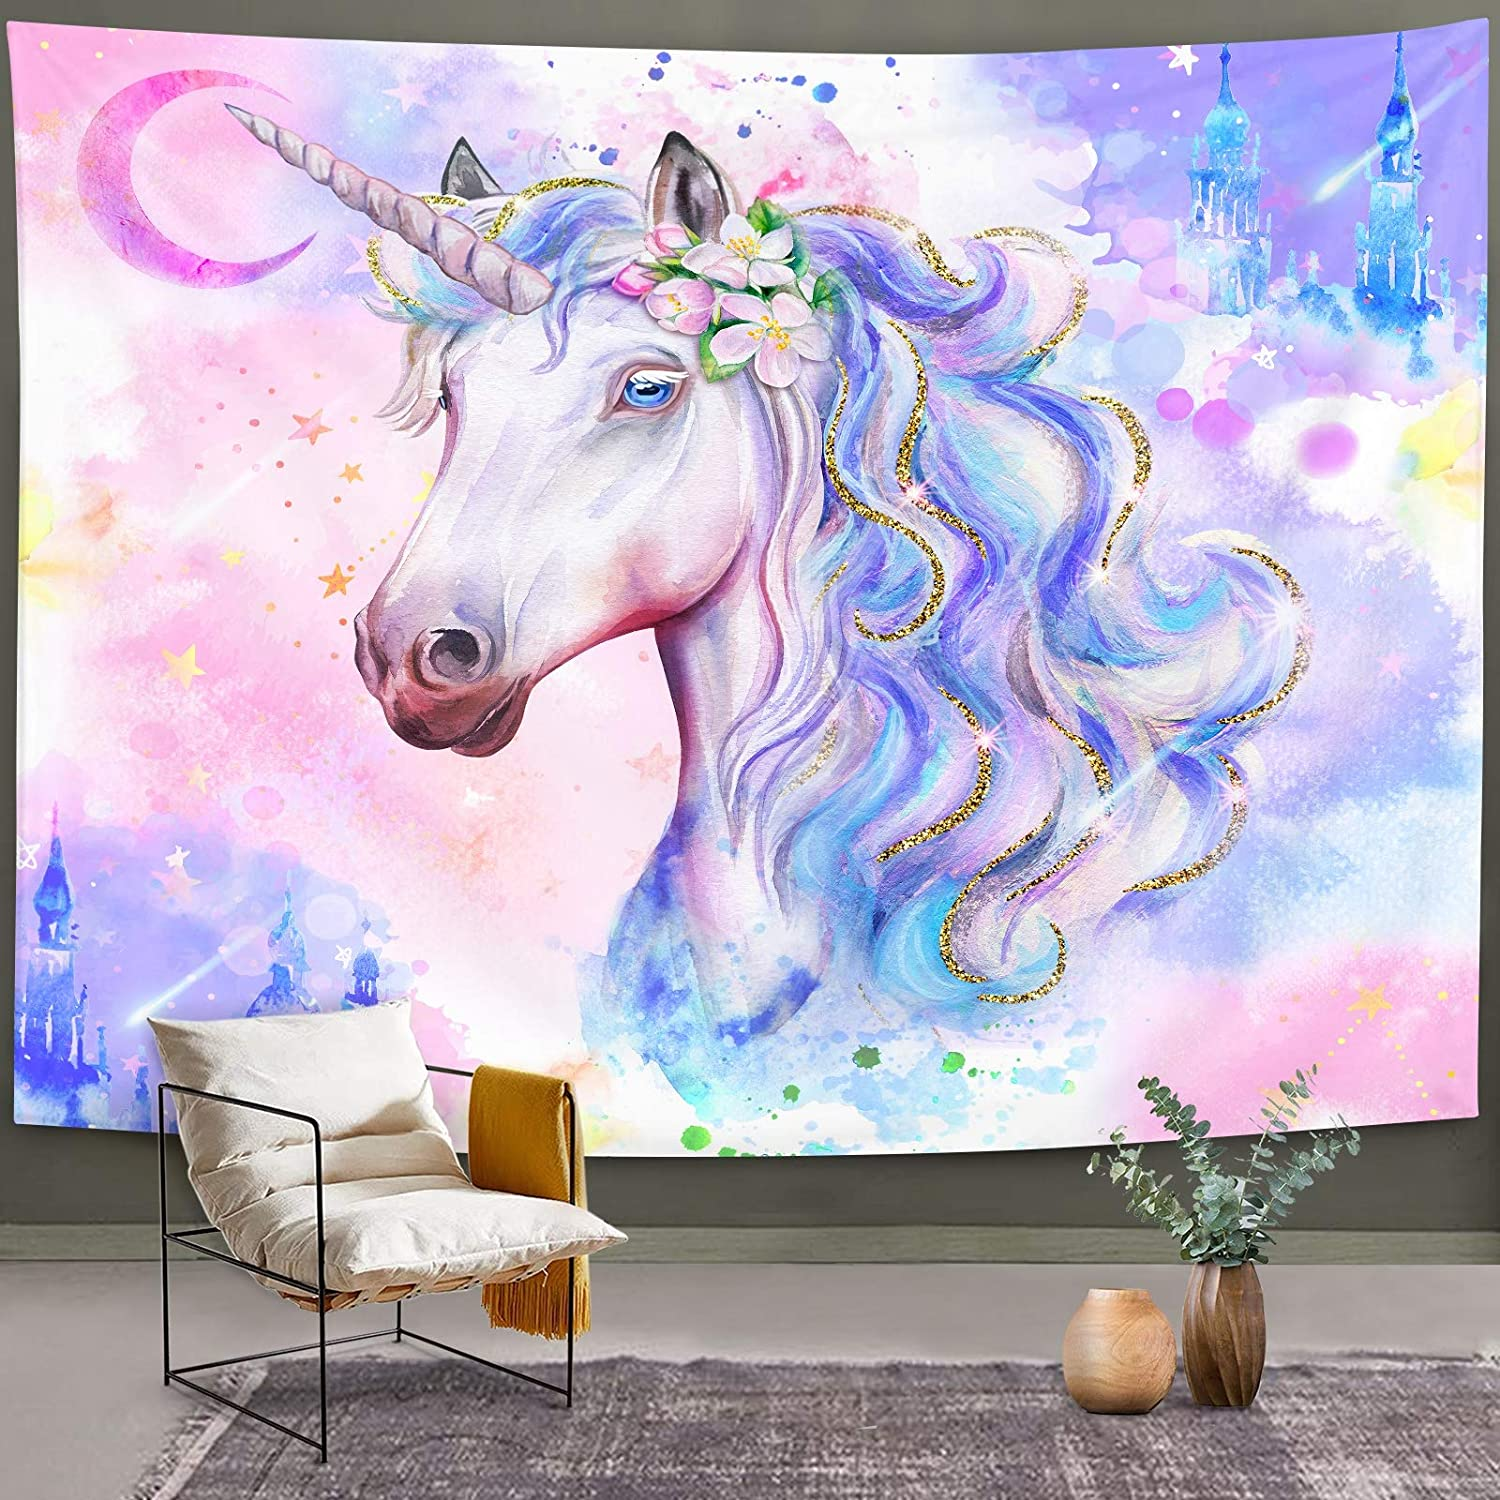 """Bonsai Tree Unicorn Tapestry, Watercolor Cool Kids Wall Hanging, Magic Castle Pink Purple Wall Decor for Bedroom College Home Decorations, 51""""x59"""""""